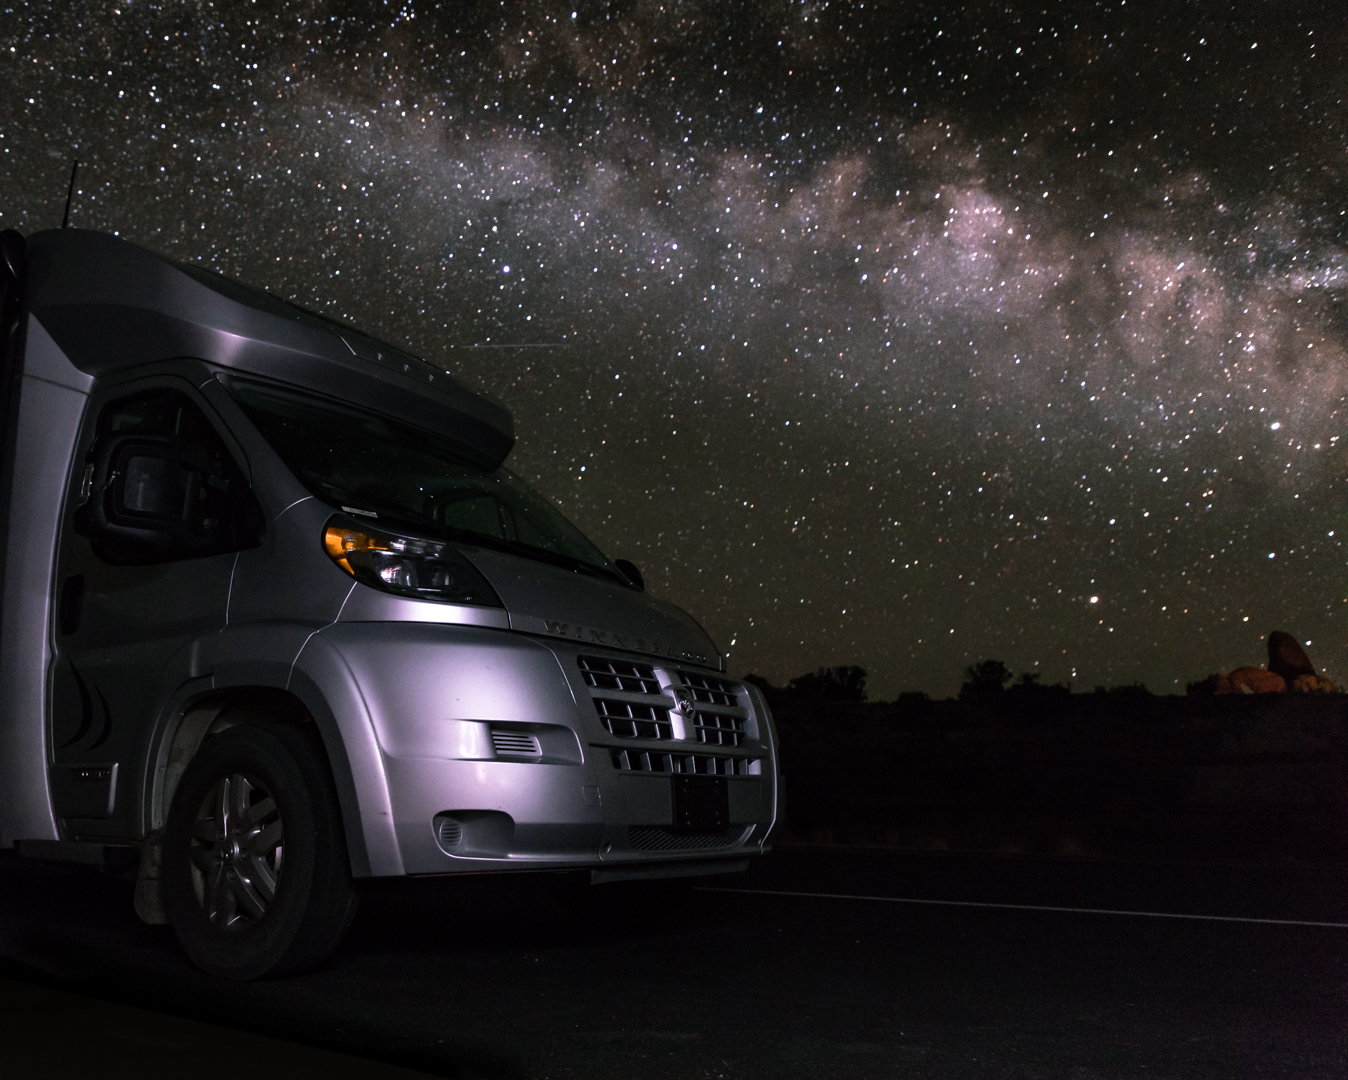 Arches National Park is a 24-hour park! There are great opportunities to stargaze and for astrophotography.